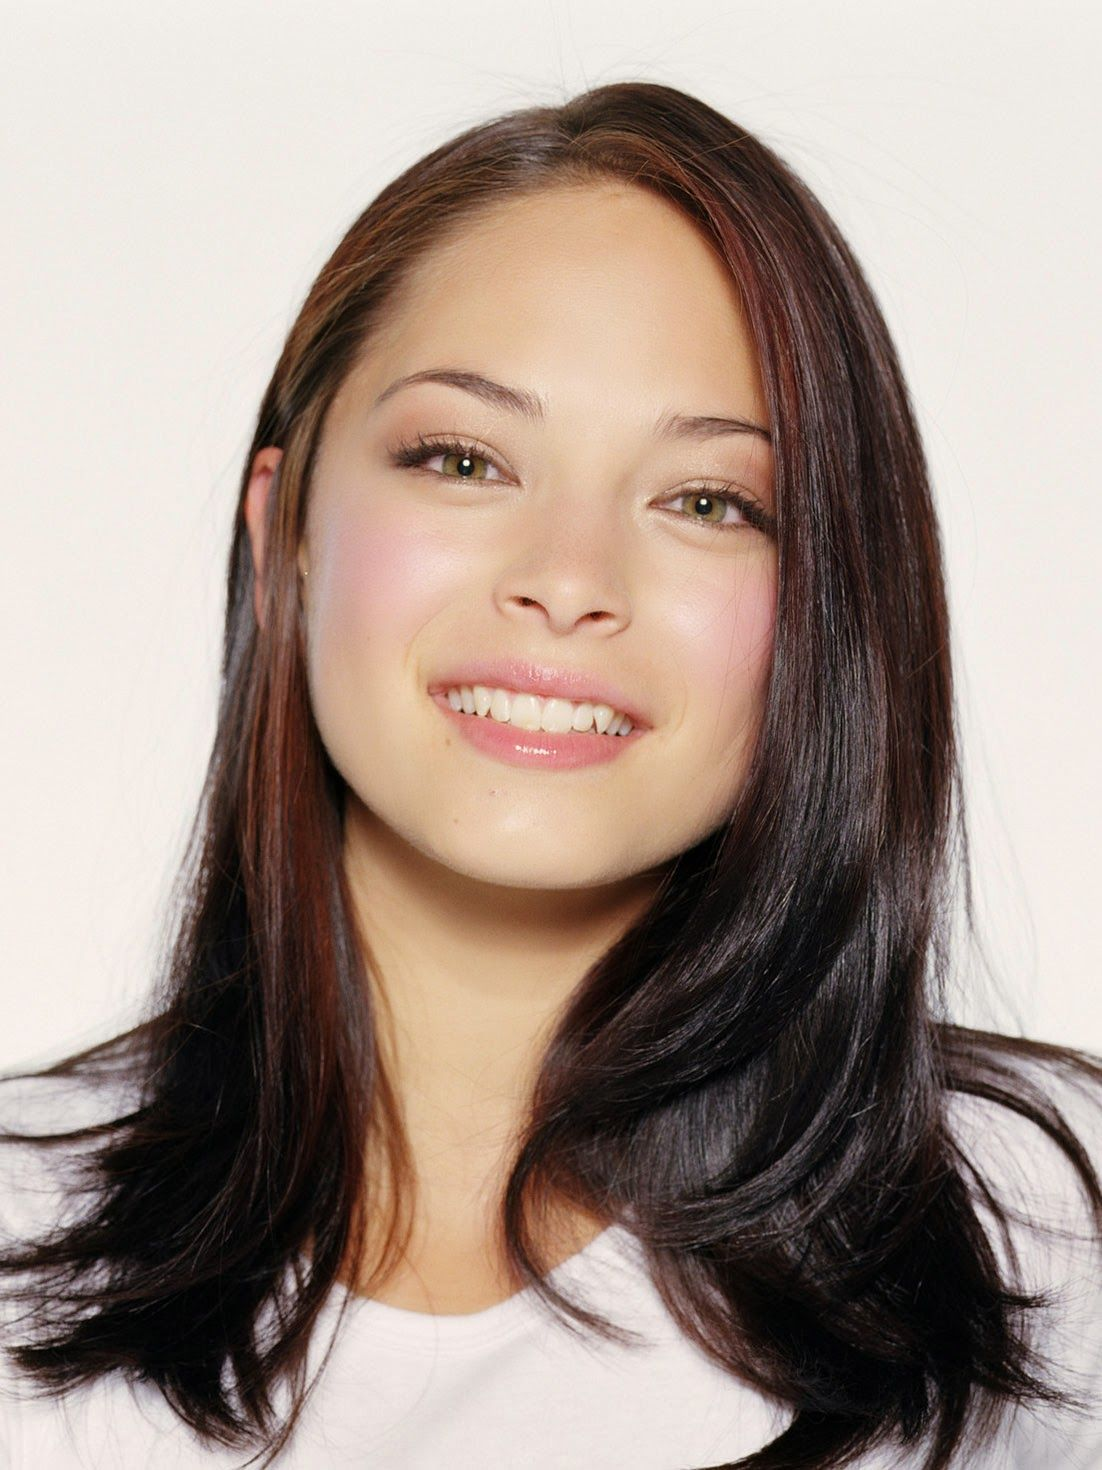 Kreuk kristin teen video final